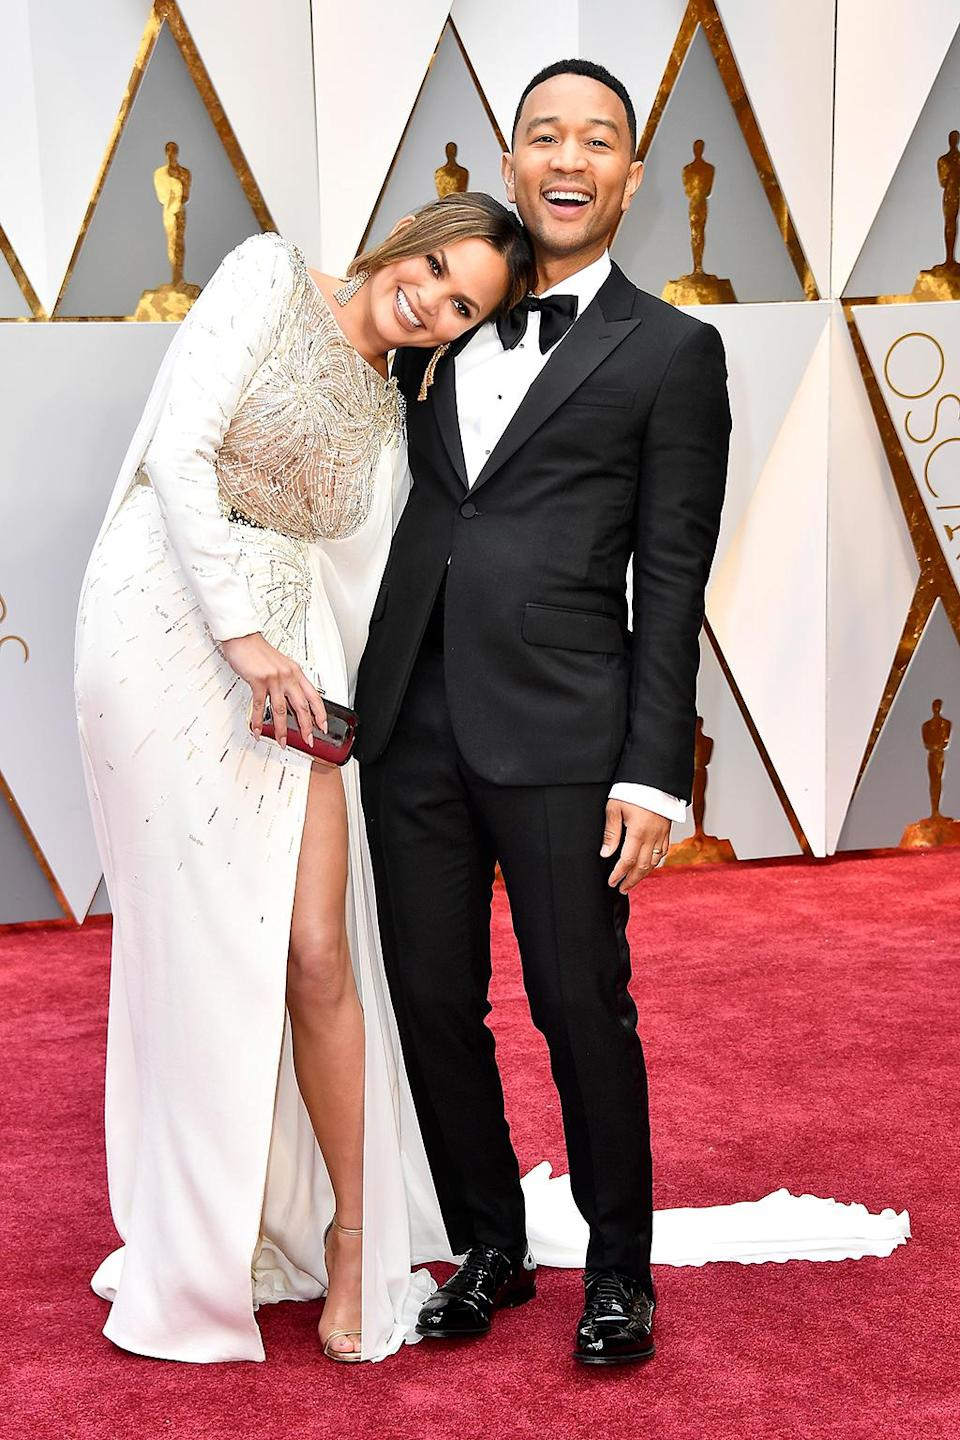 <p>Model Chrissy Teigen and singer John Legend attend the 89th Annual Academy Awards at Hollywood & Highland Center on February 26, 2017 in Hollywood, California. (Photo by Frazer Harrison/Getty Images) </p>